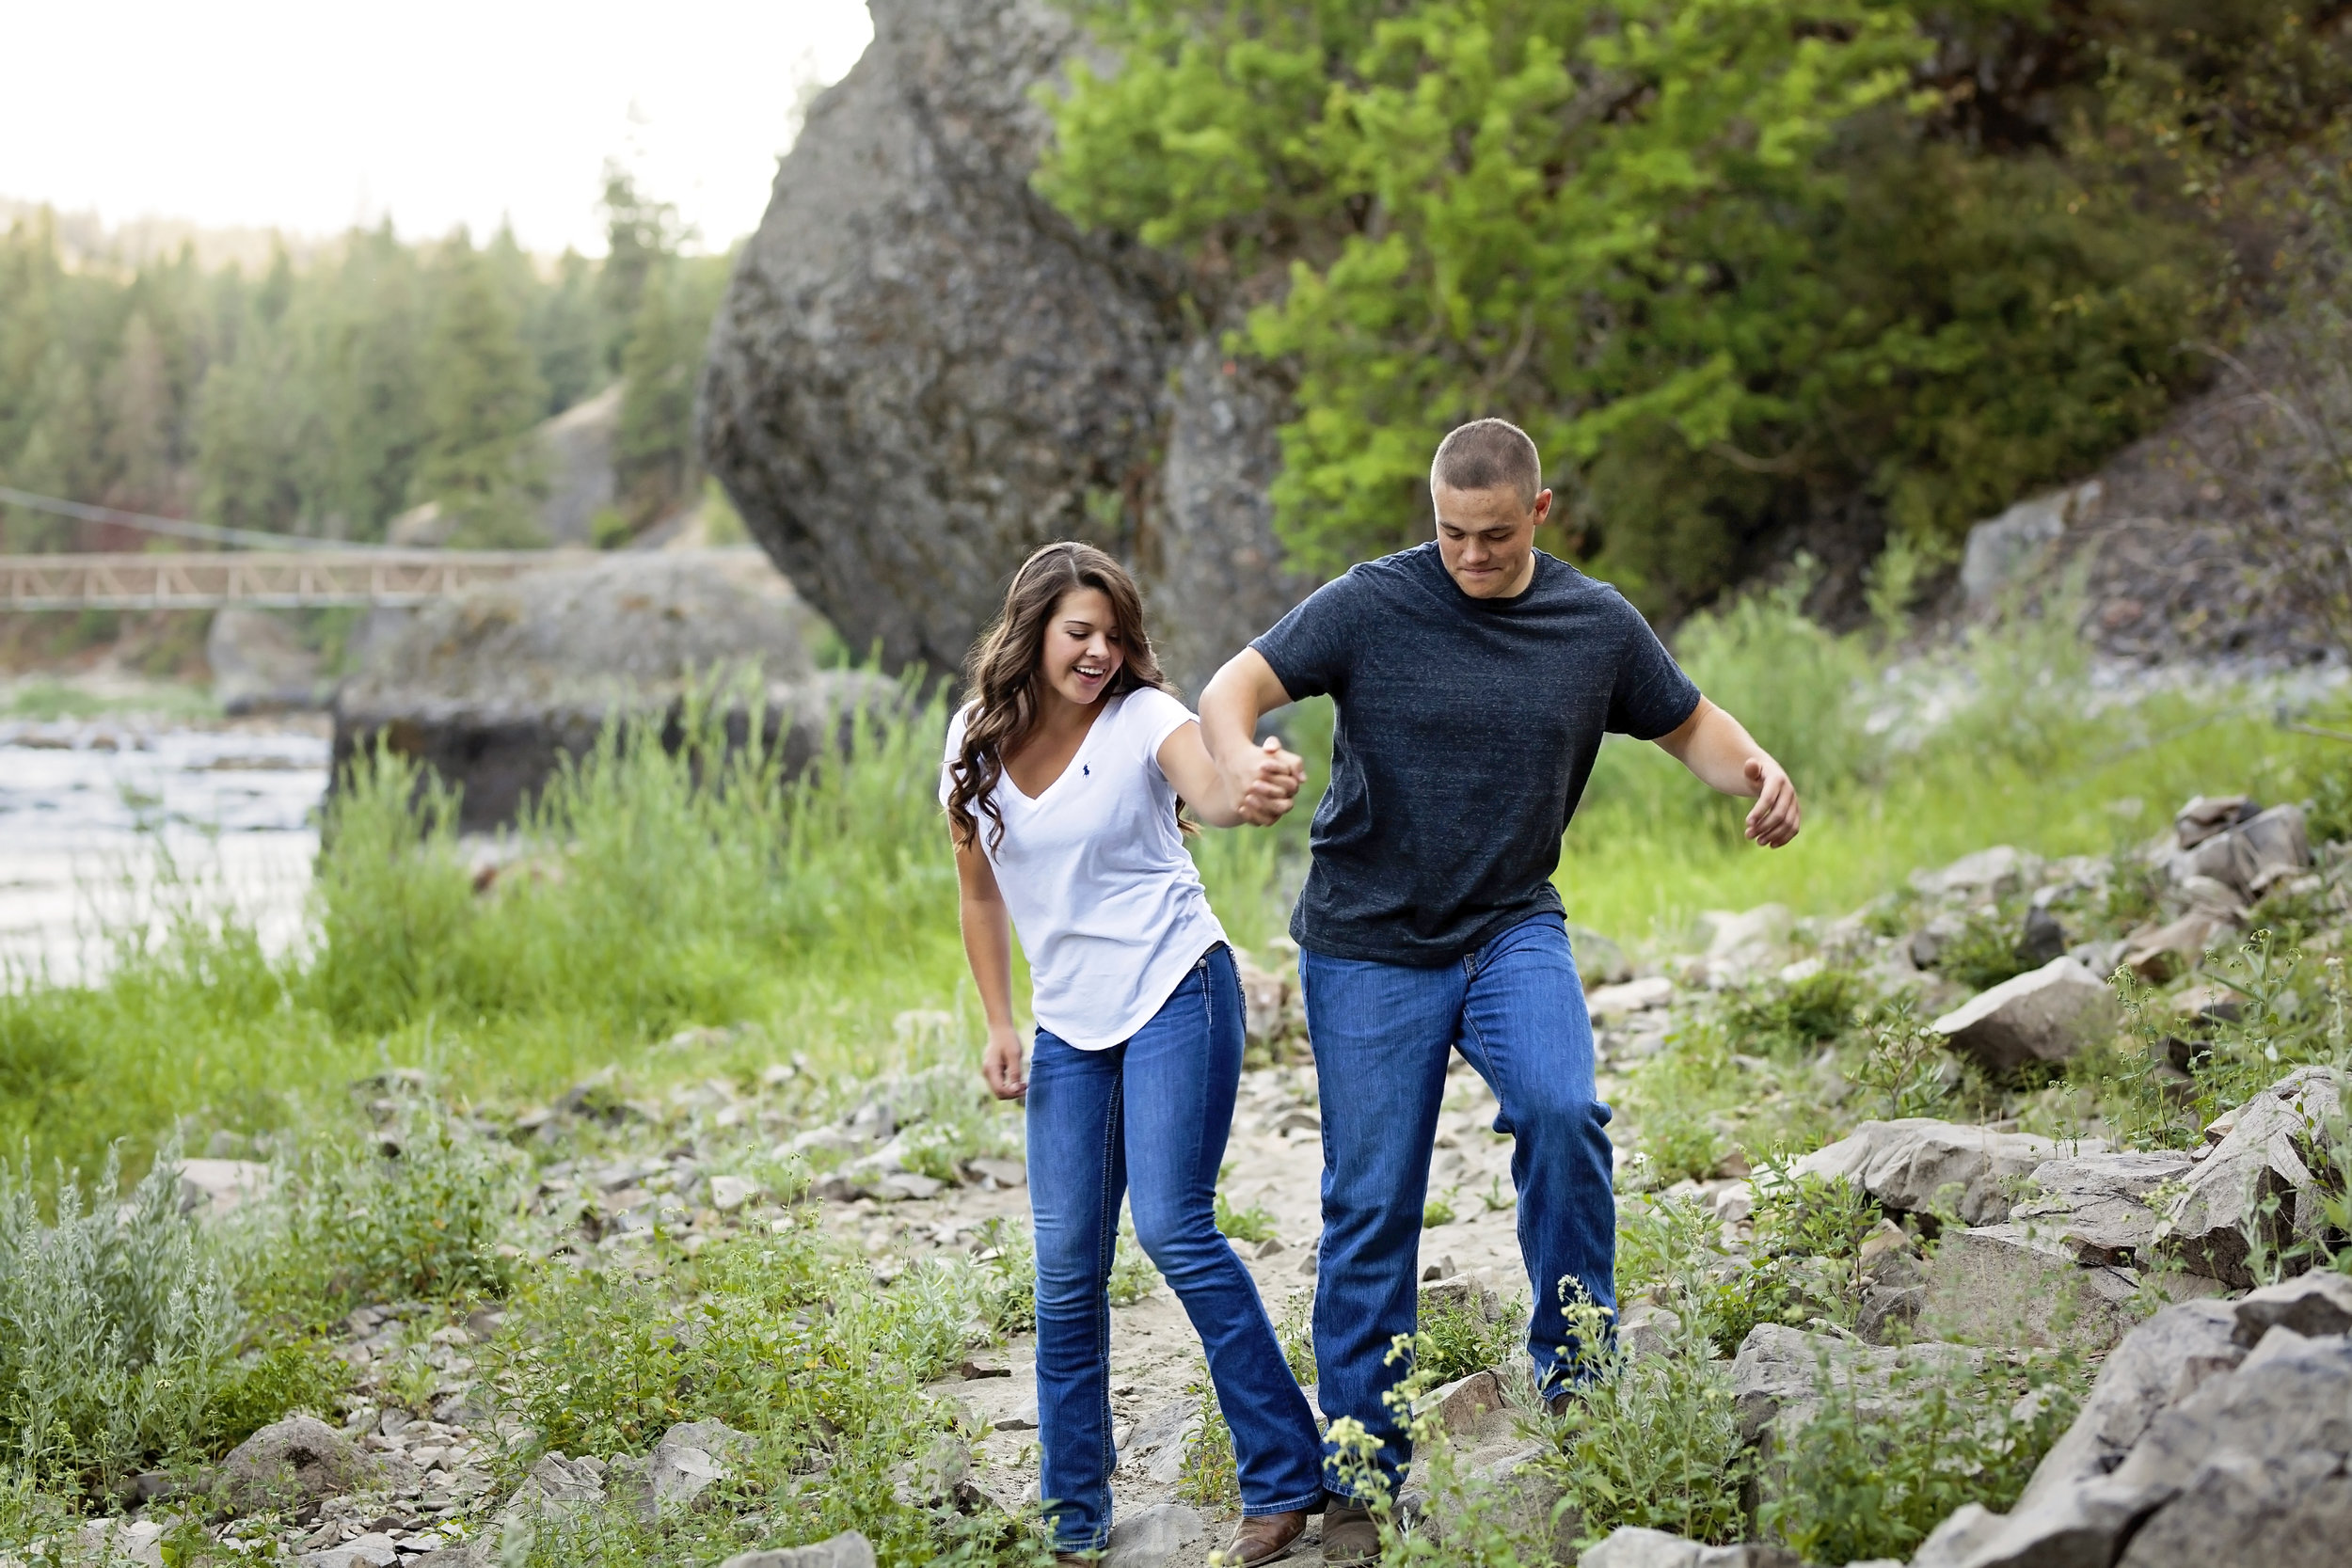 Cheney couple get engagement pictures at Bowl and Pitcher Park in Spokane